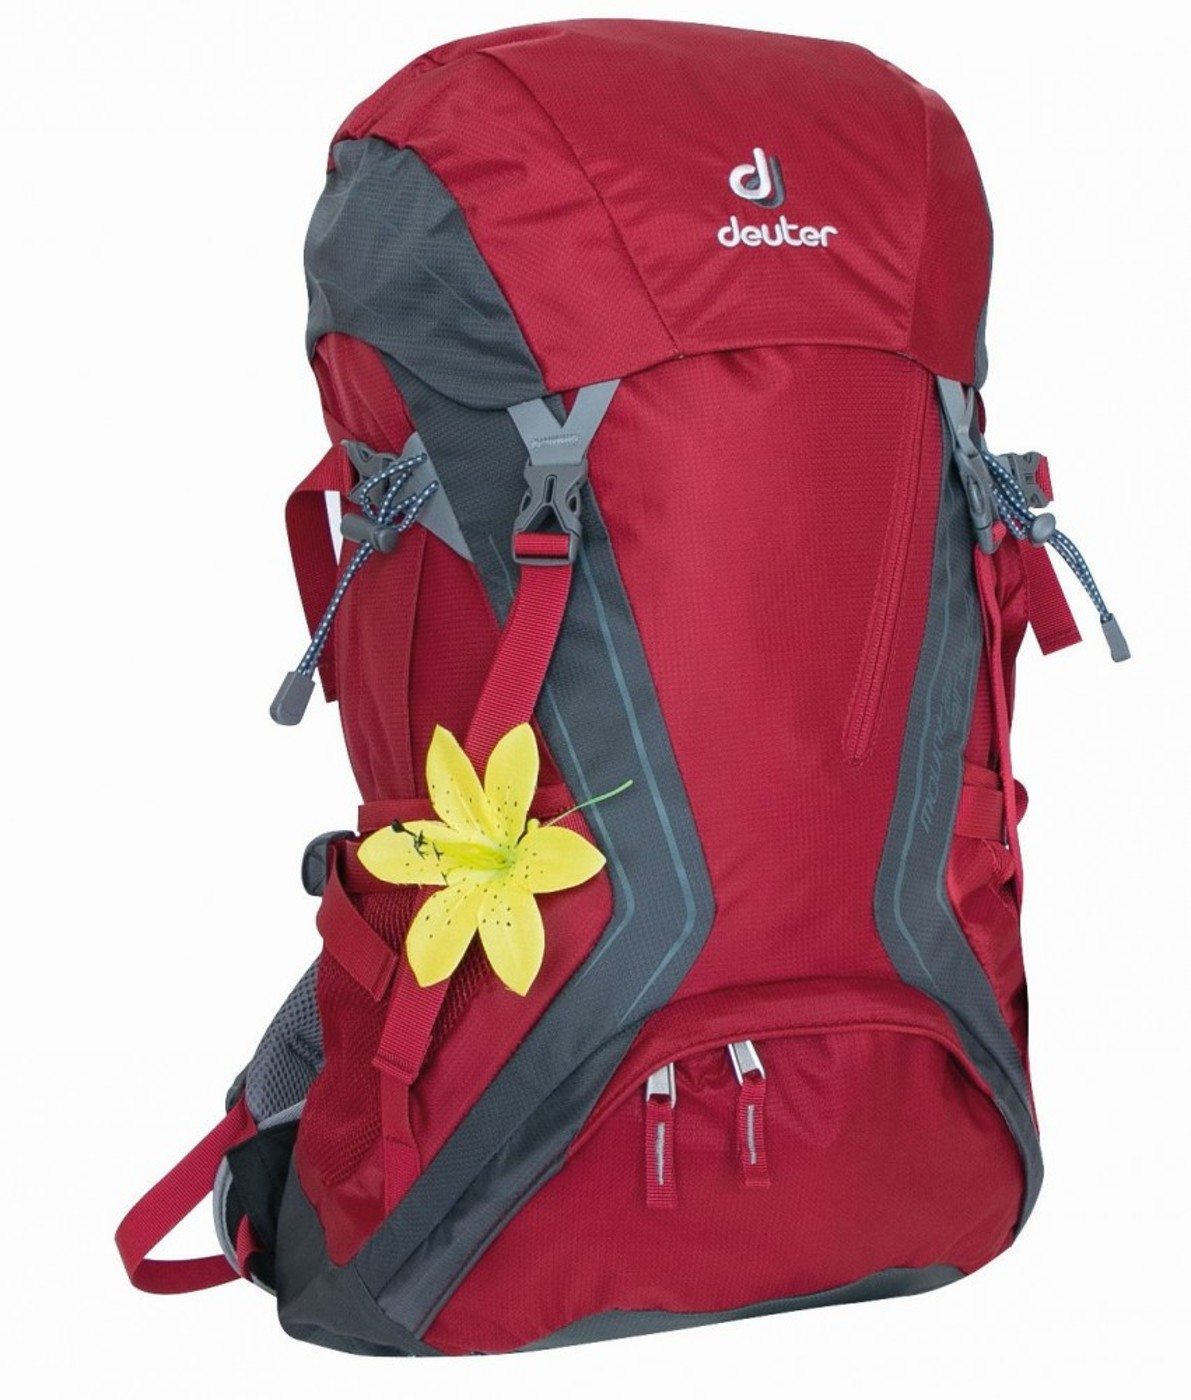 DEUTER MOUNTAIN AIR 28 SL